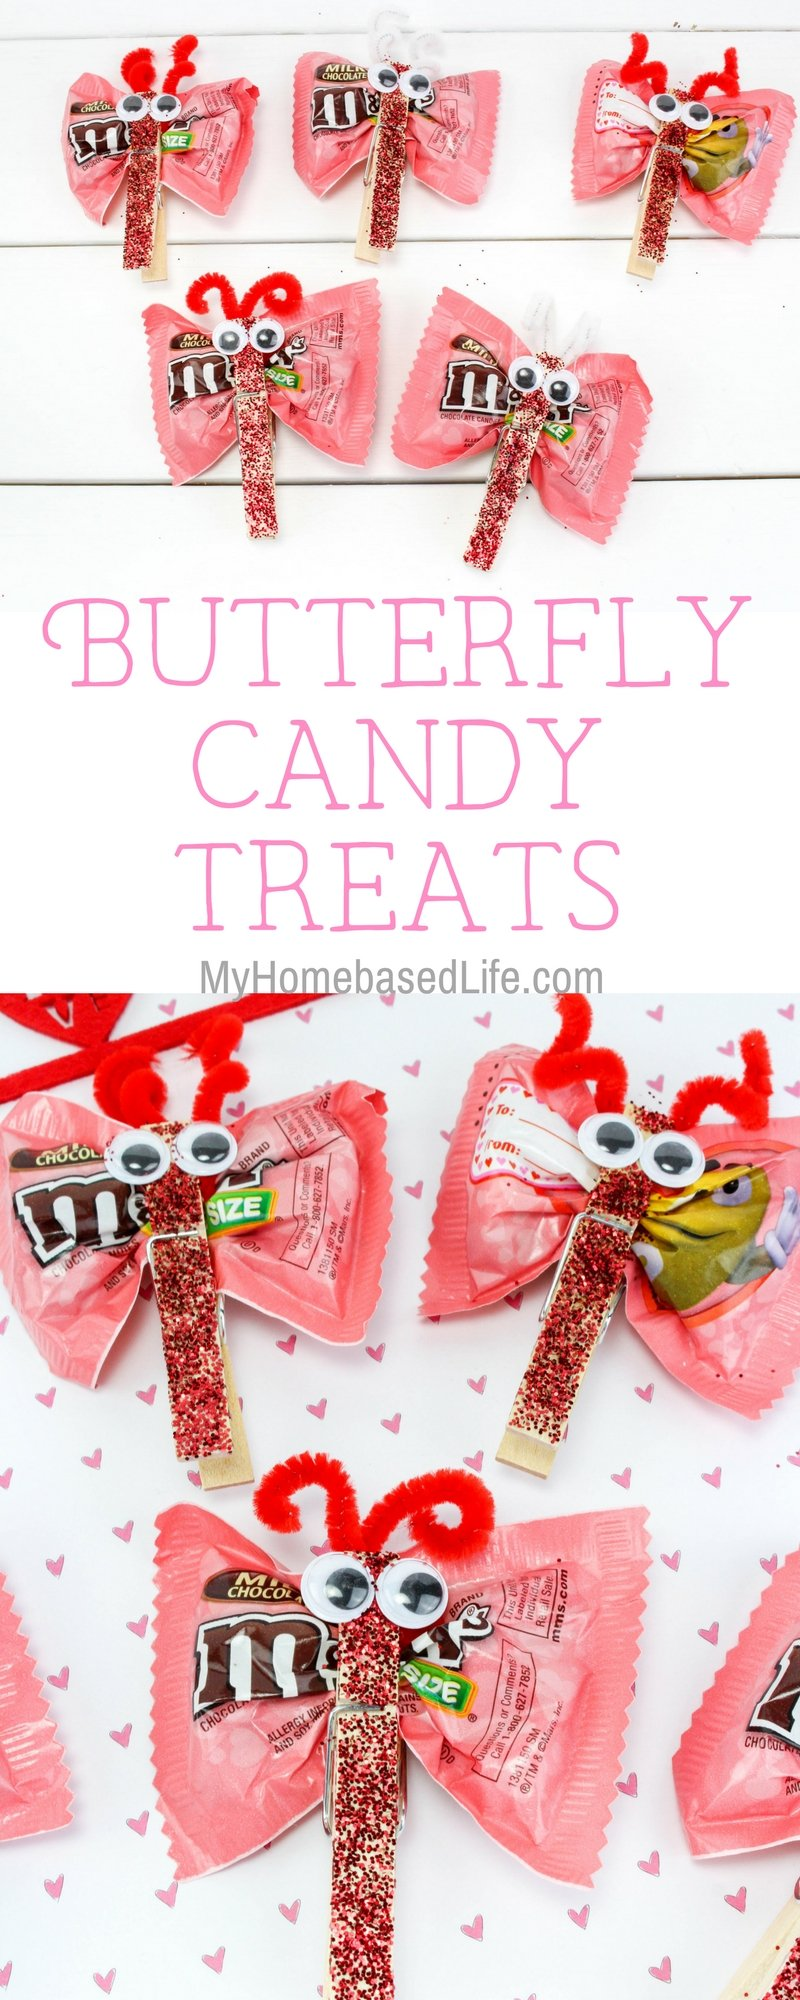 A great DIY for kids that they can take to school and share with classmates.Valentine Candy Love Bugs Craft or Butterfly Treats is the way to go for kid-approved fun. #valentinesday #valentinesdaycraft #butterfly #birthdayparty #myhomebasedlife | Valentine's Day Craft for Kids | Classroom Valentine | Easy Crafts for kids | Simple Crafts for Kids | Valentine Crafts | Love Bugs | Butterfly Treats | Butterfly Crafts